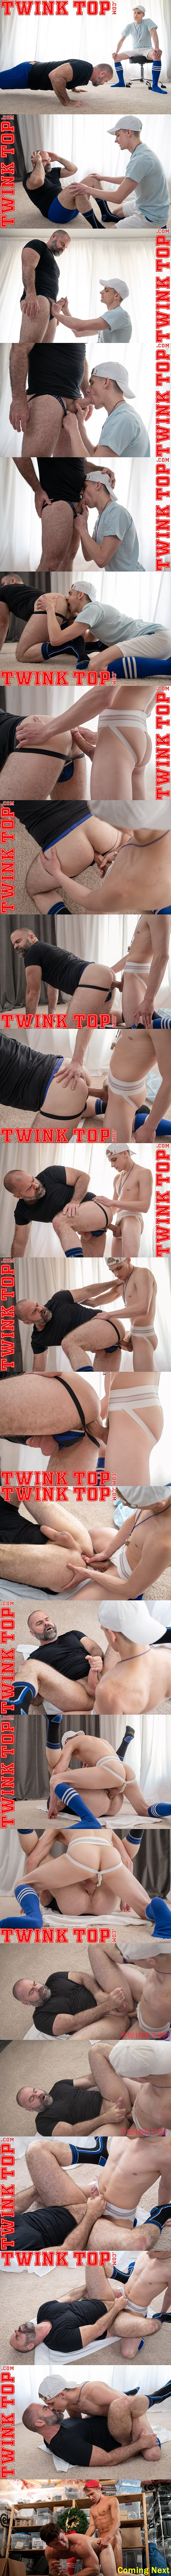 Big-dicked twink Marcus Ryan barebacks masculine daddy coach Bishop Angus before he fucks the cum out of Angus and creampies him in Top Training at Twinktop 01